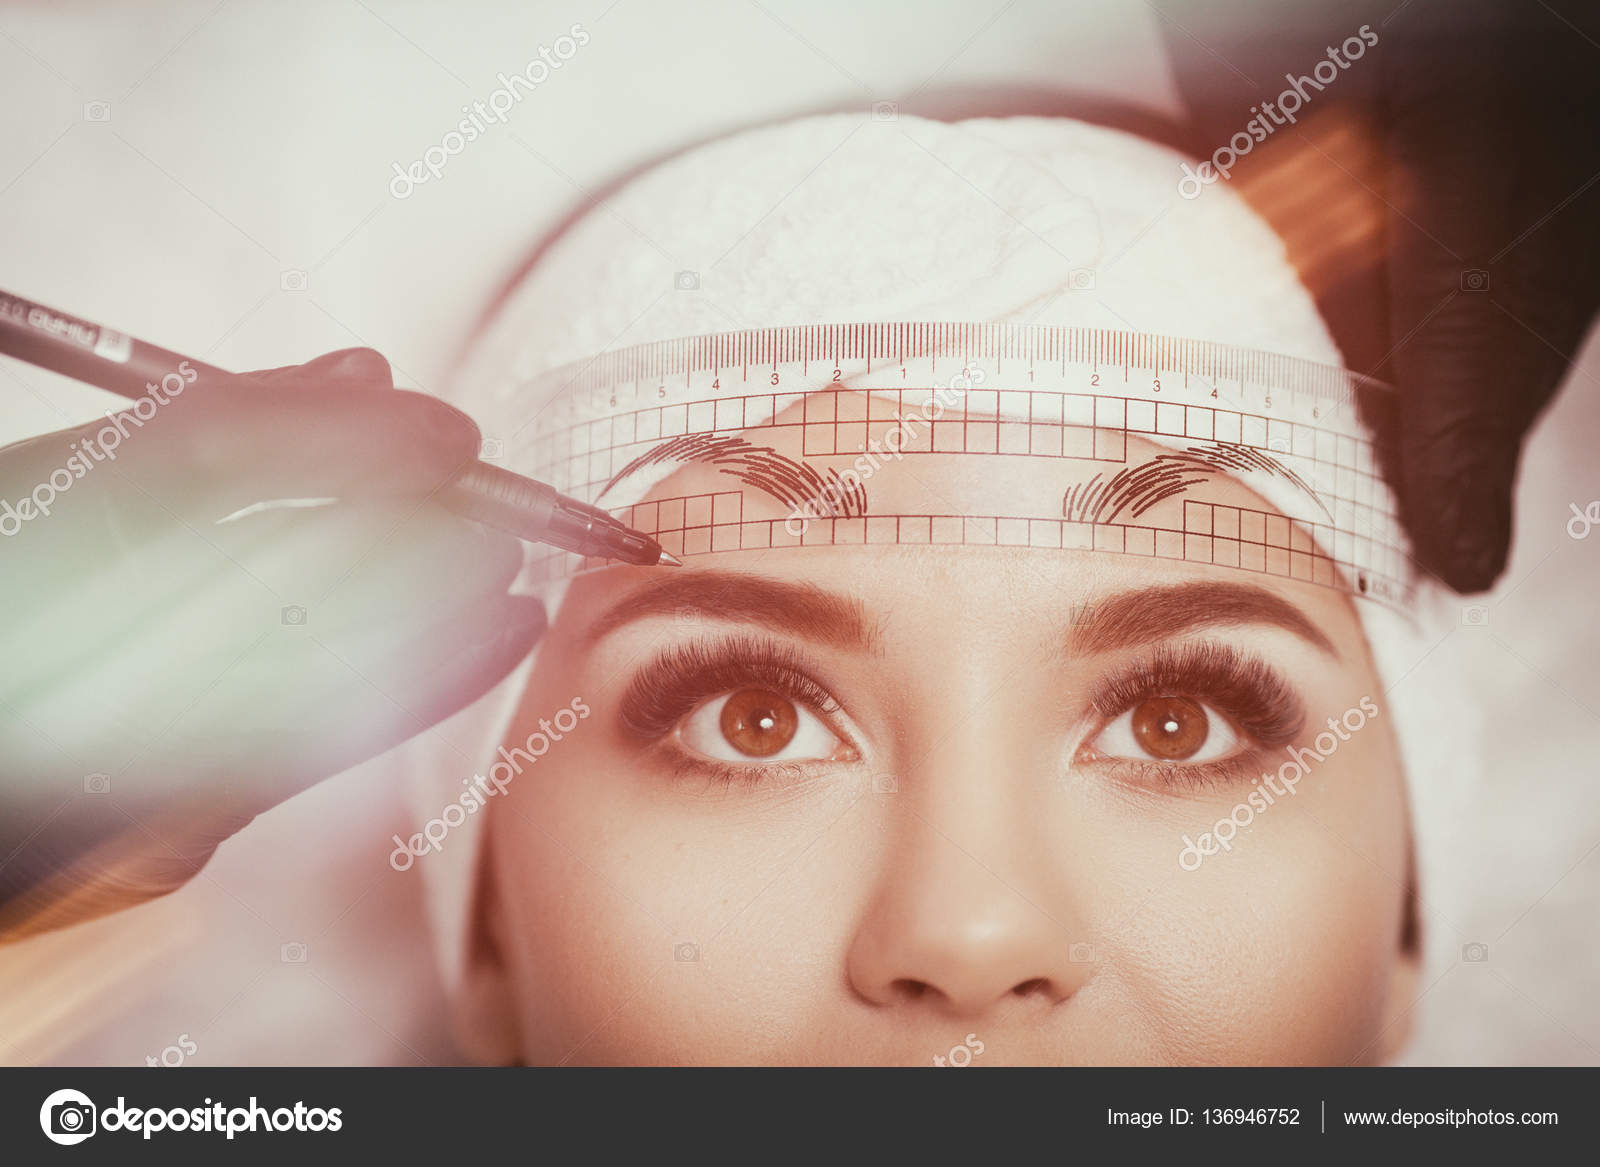 Permanent makeup eyebrows. Mikrobleyding eyebrows workflow in a beauty salon. Cosmetologist applying a special permanent makeup on a womans eyebrows.